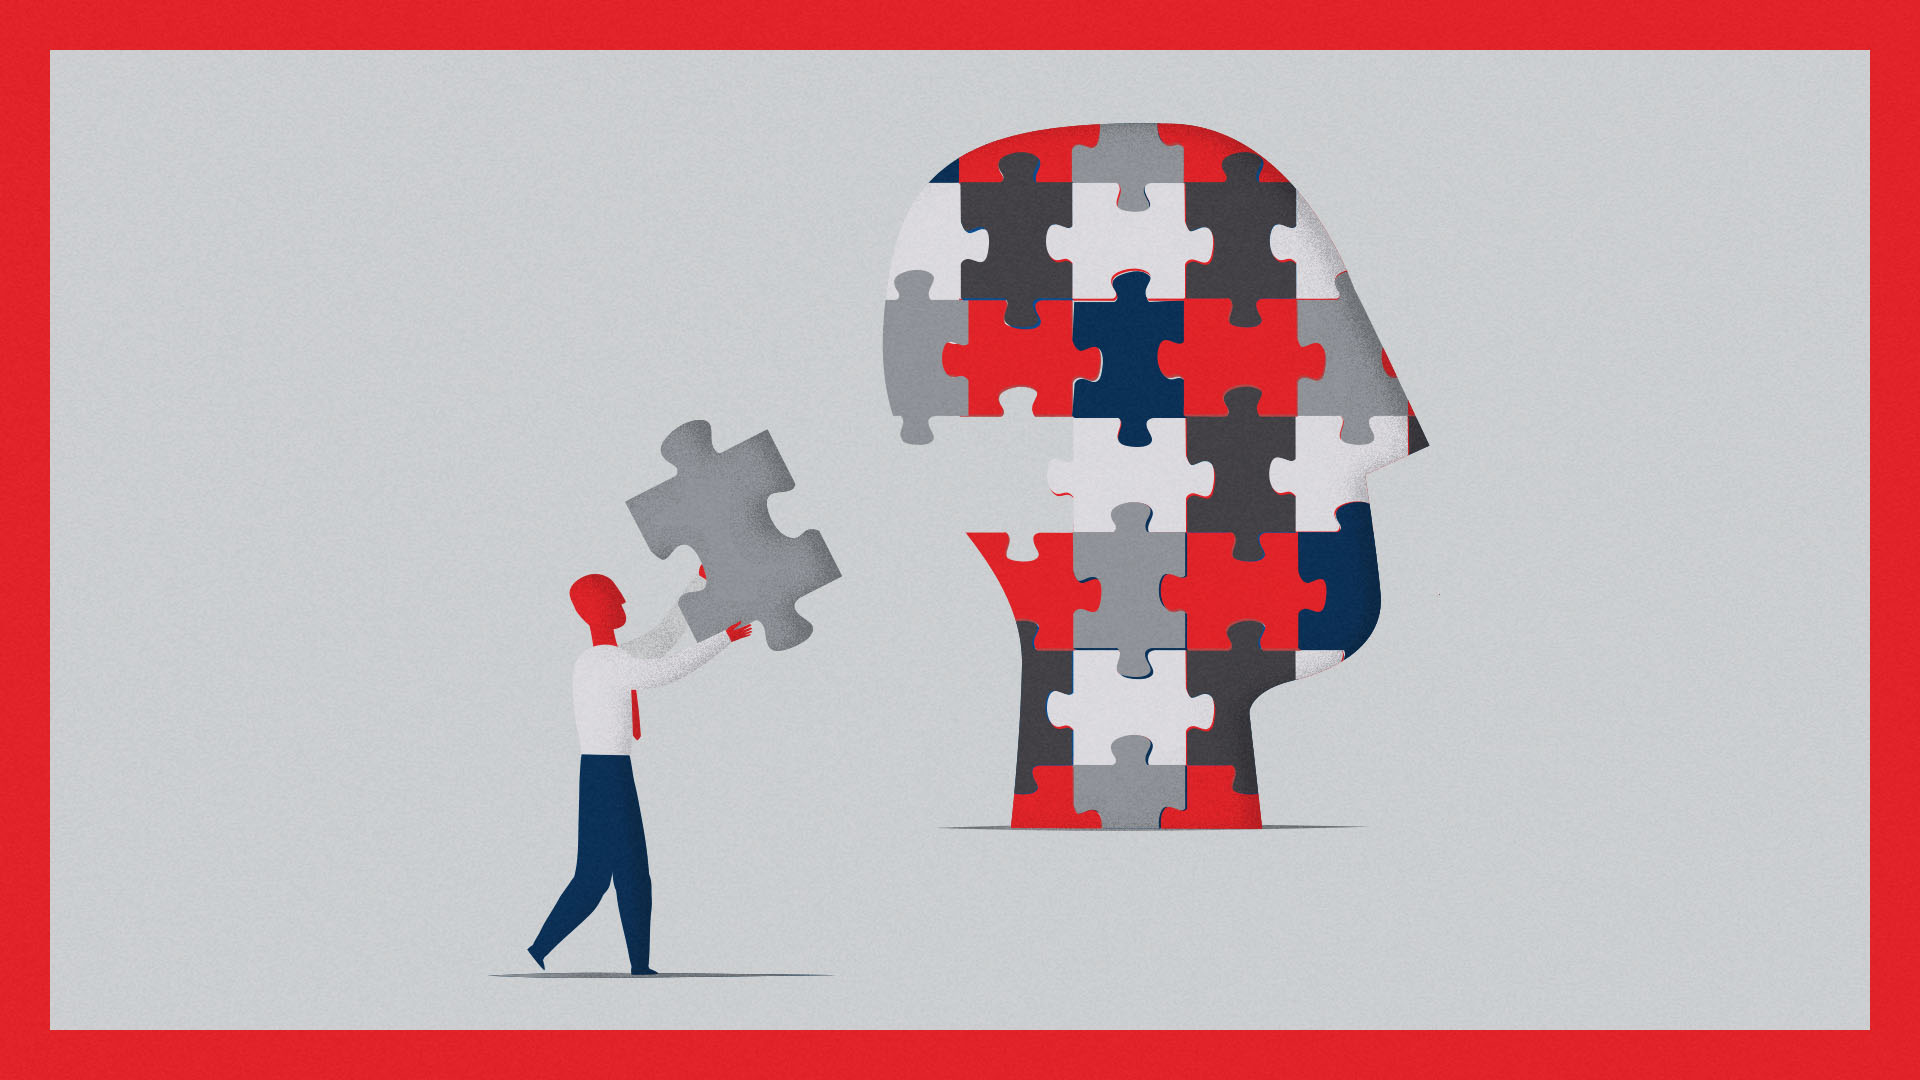 A person placing the last piece of a head-shaped jigsaw coloured using the Time Magazine brand palette